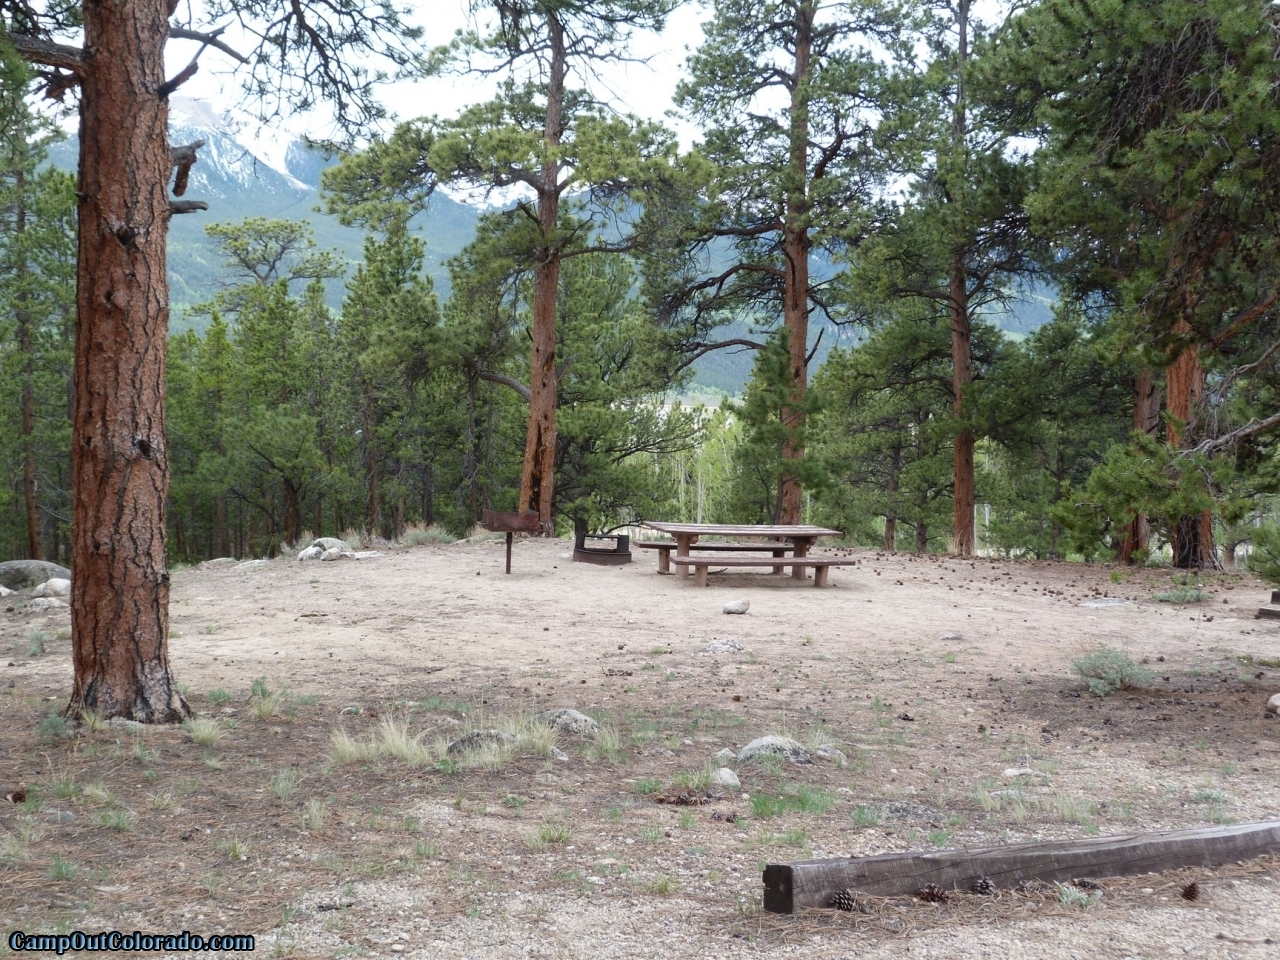 camp-out-colorado-lakeview-campground-campsite-overlook